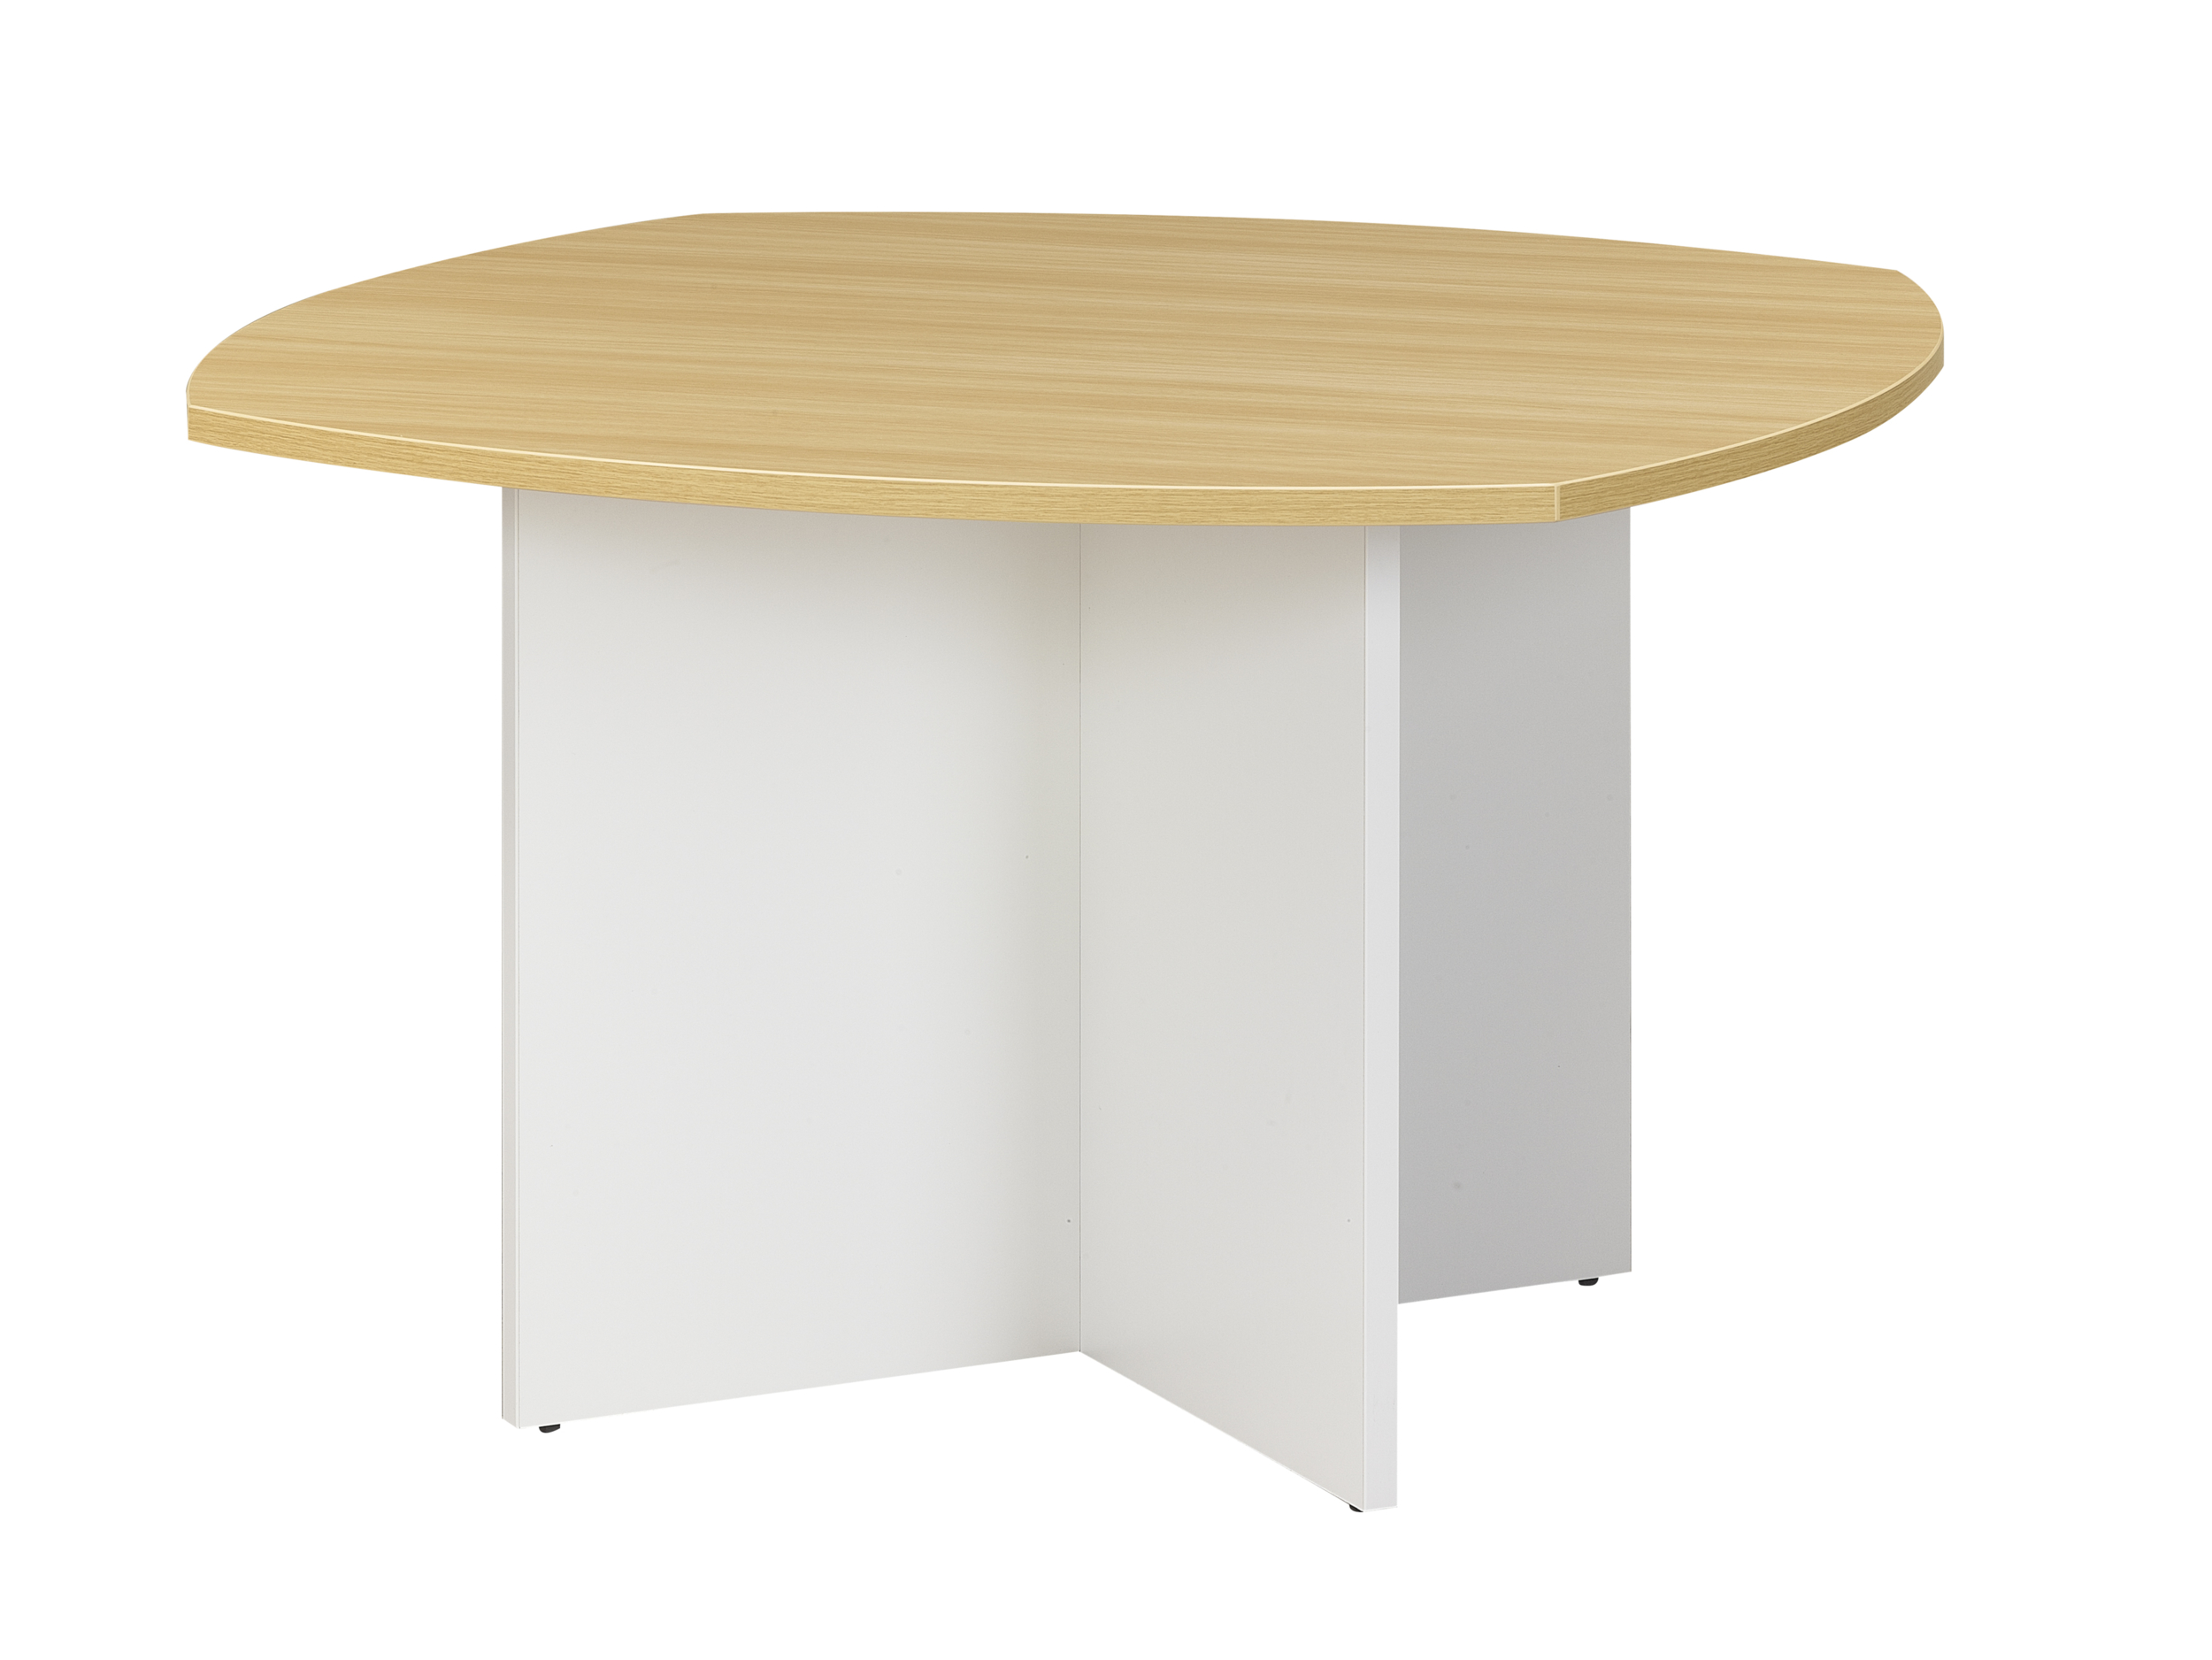 SUNDAY CHENE TABLE RONDE PIED BLANC